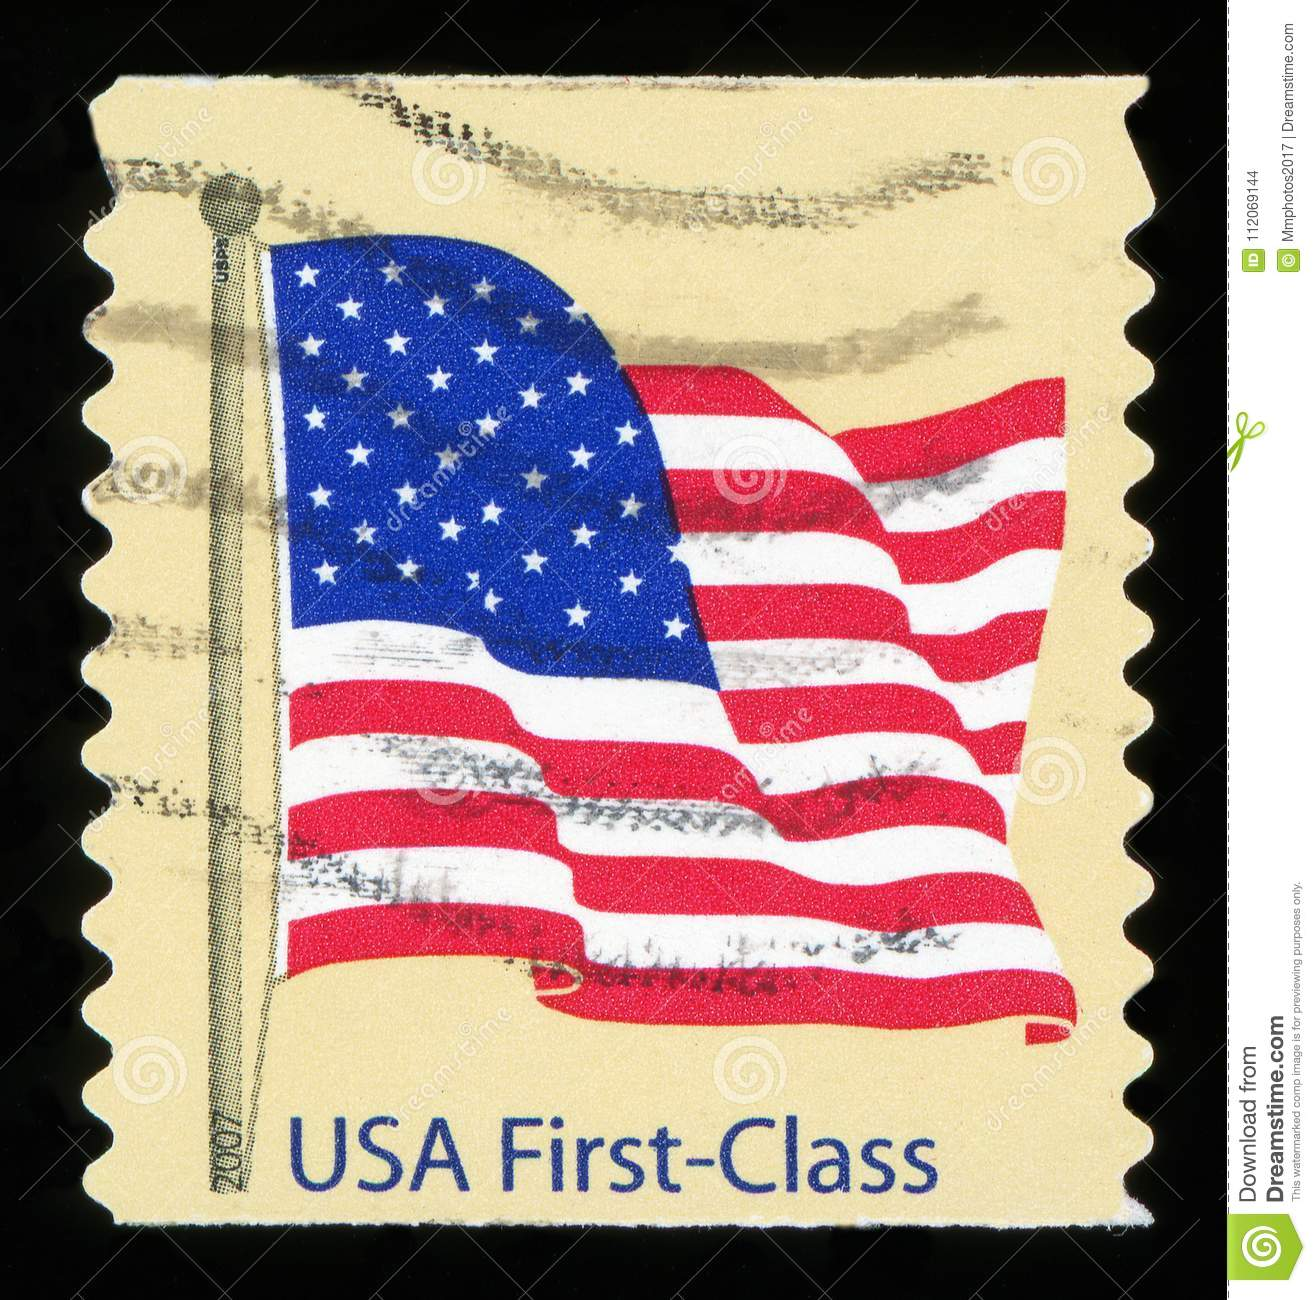 US Postage Stamp Stock Photo Image Of America Features